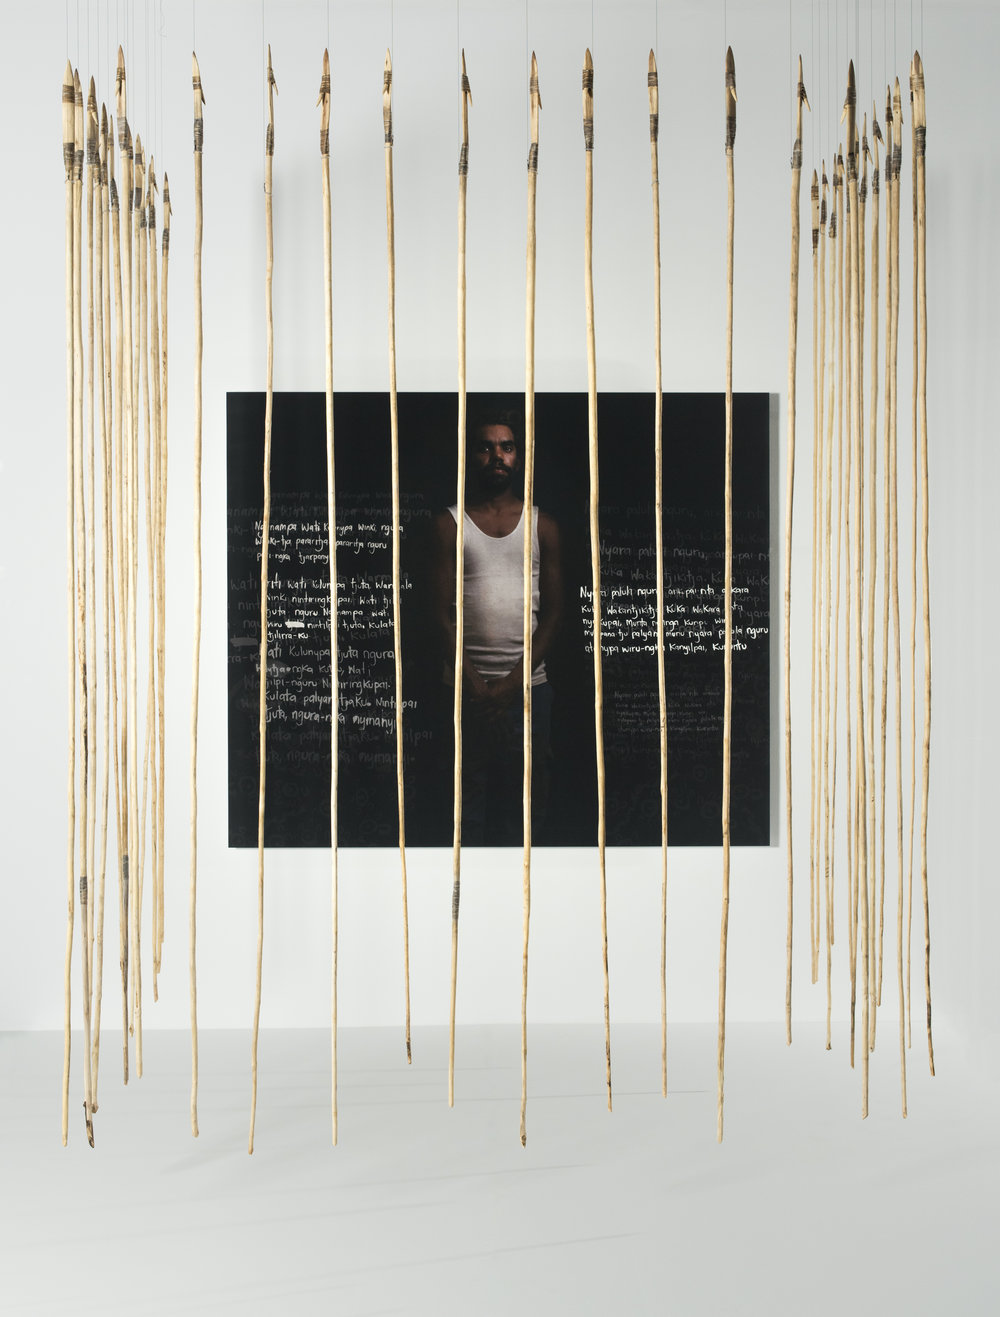 Anwar Young, Unrupa Rhonda Dick and Frank Young,  Kulata Tjuta – Wati kulunypa tjukurpa (Many spears – Young fella story) , 2017, digital print, wood, kangaroo tendon,  kiti  (natural glue); print 148 x 176cm; spears 280 x 2 x 2cm approx. (37 pieces); image courtesy the artists and the Museum and Art Gallery of the Northern Territory, Darwin